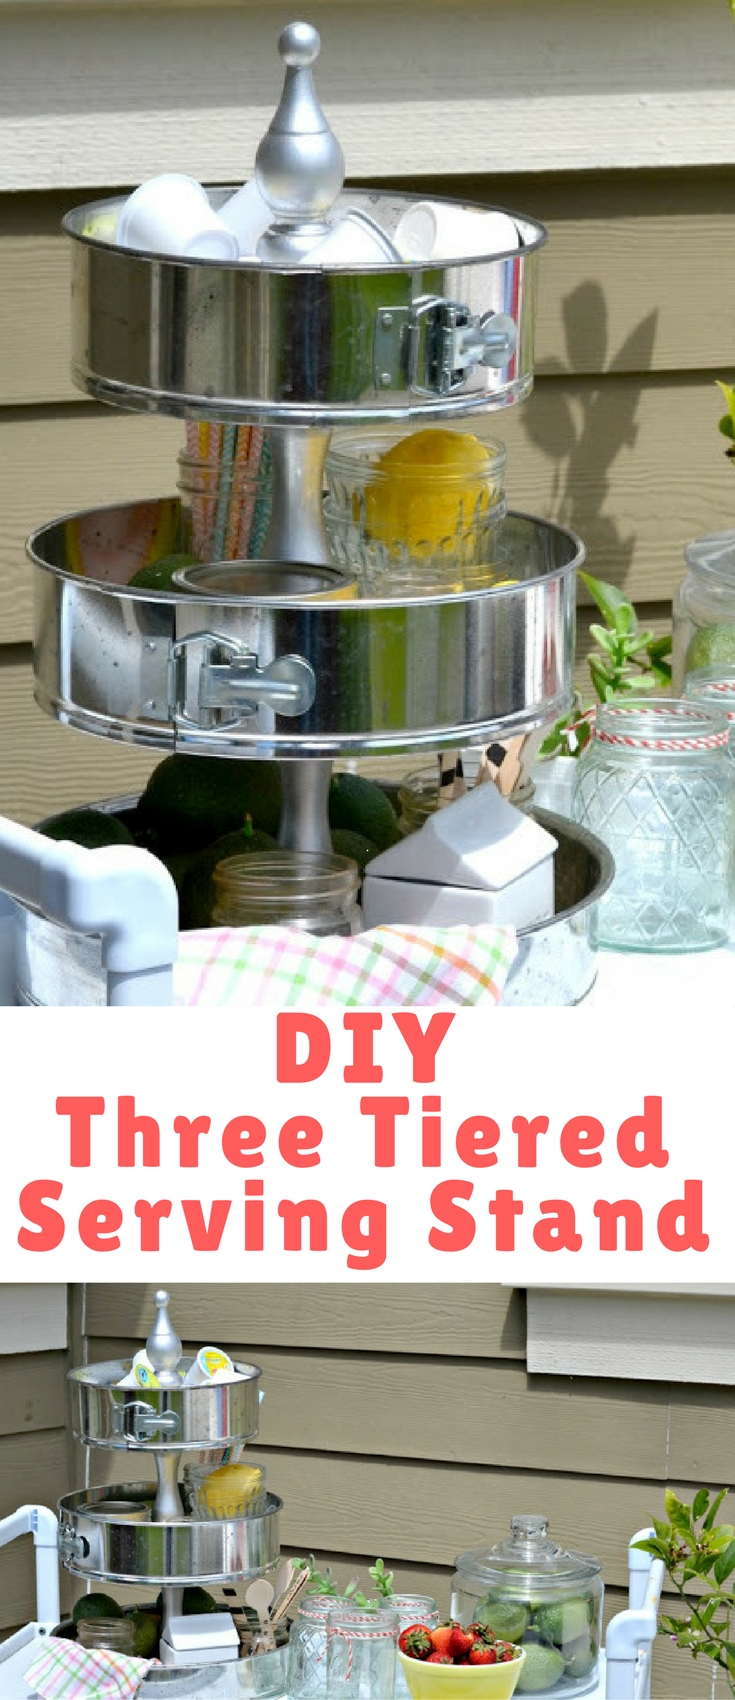 I have had my eyes on the three tiered stands that are so popular right now. I knew I could make my own and started looking at pans I was finding at garage sales a little differently.